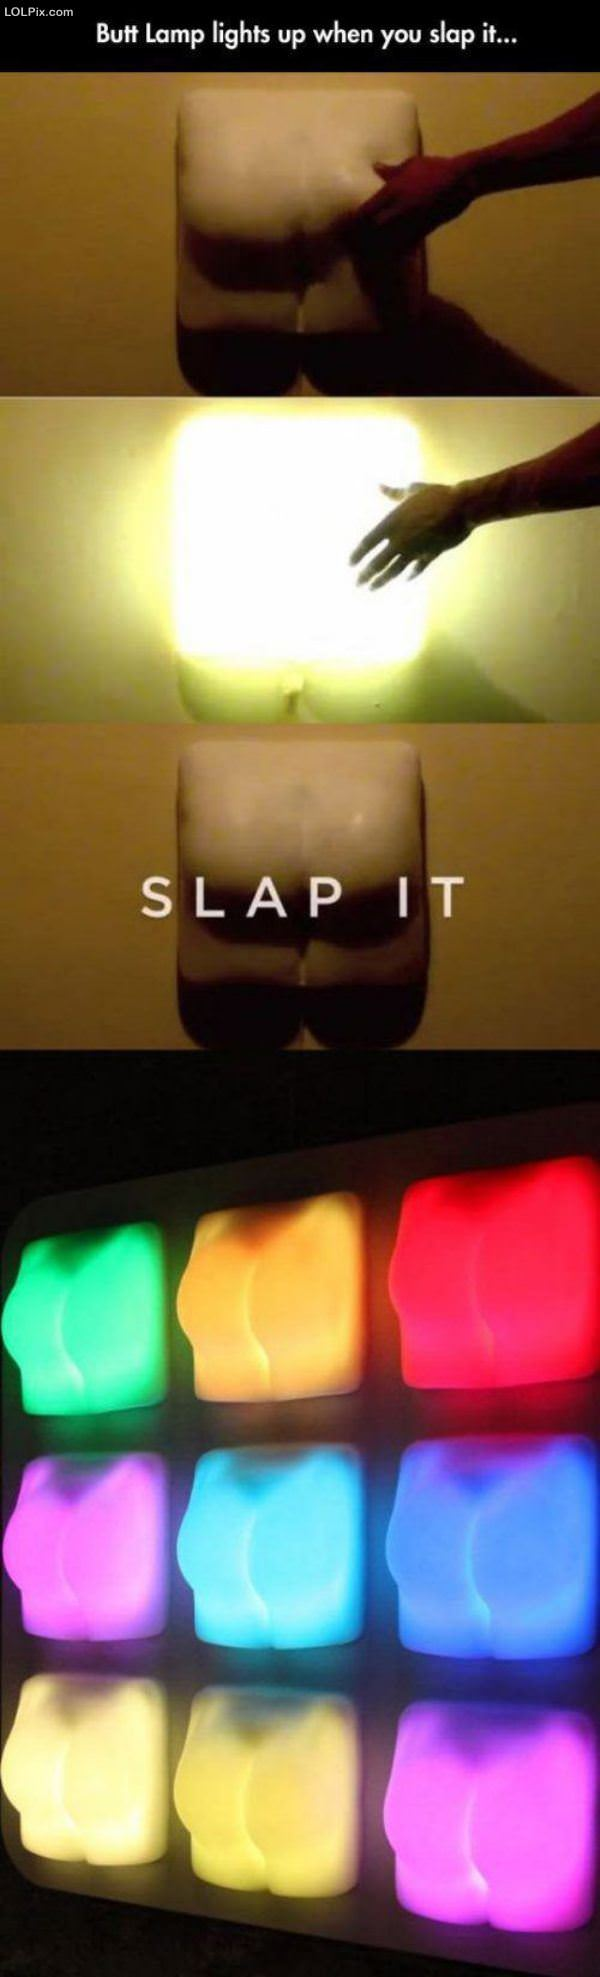 Butt Slap Lamp